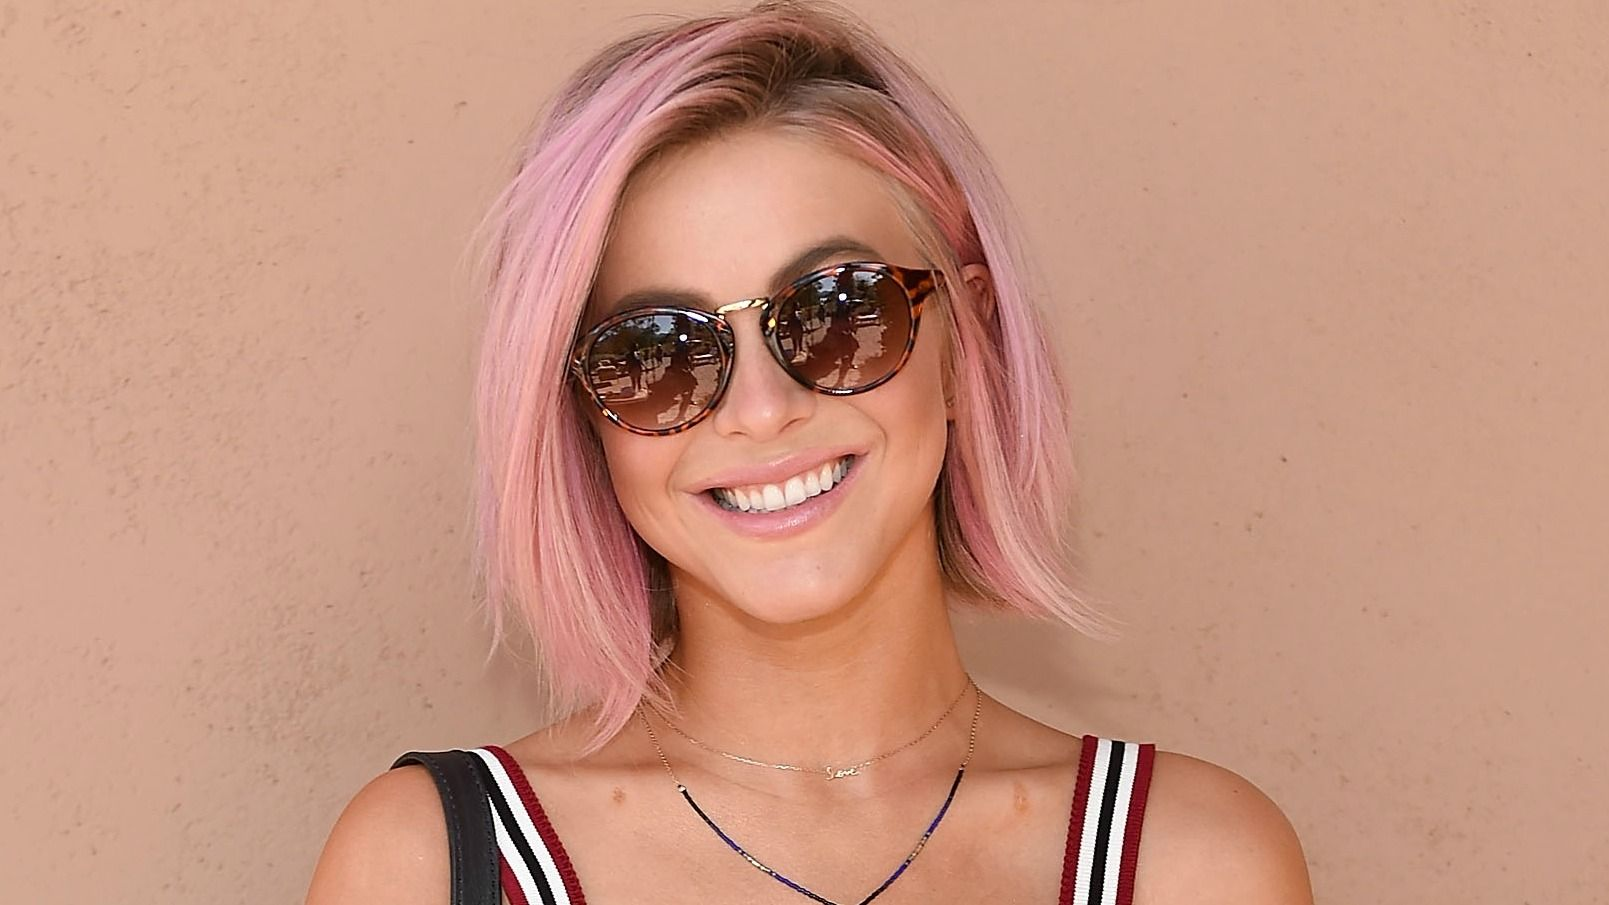 5 Hairstyles For Short Hair Erin Rose: How To Get Rose Gold Hair: The Do's, The Don'ts, And The